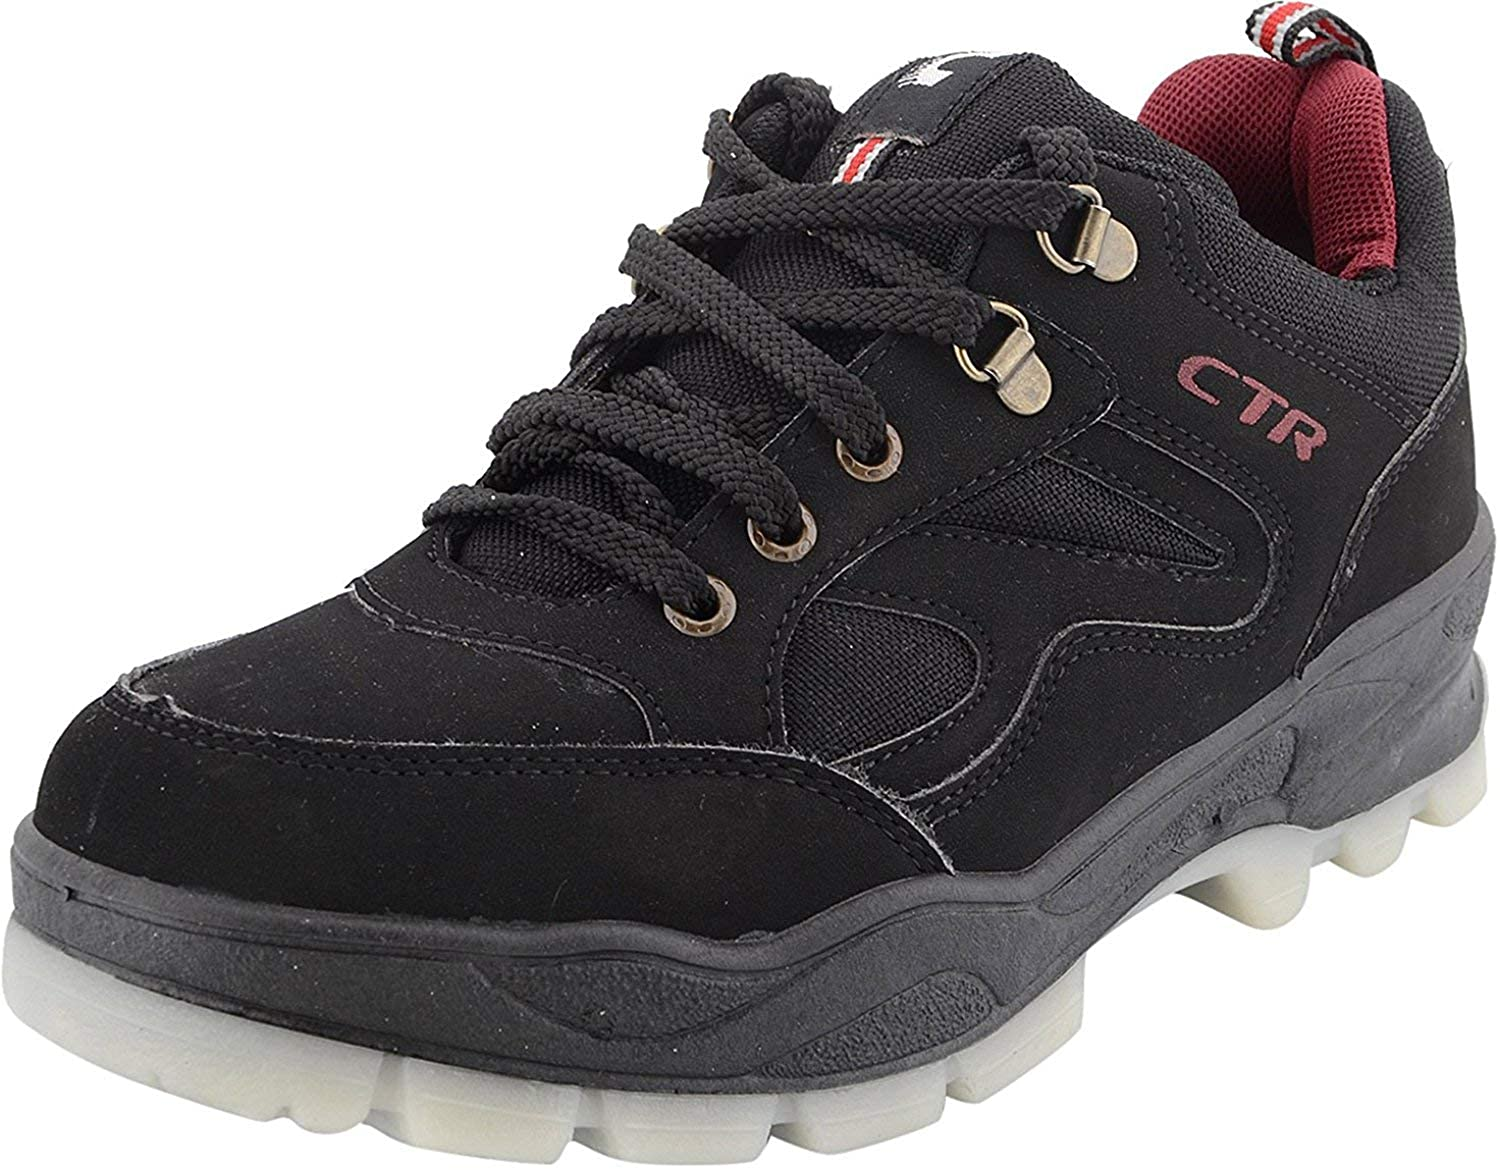 water resistant shoes amazon